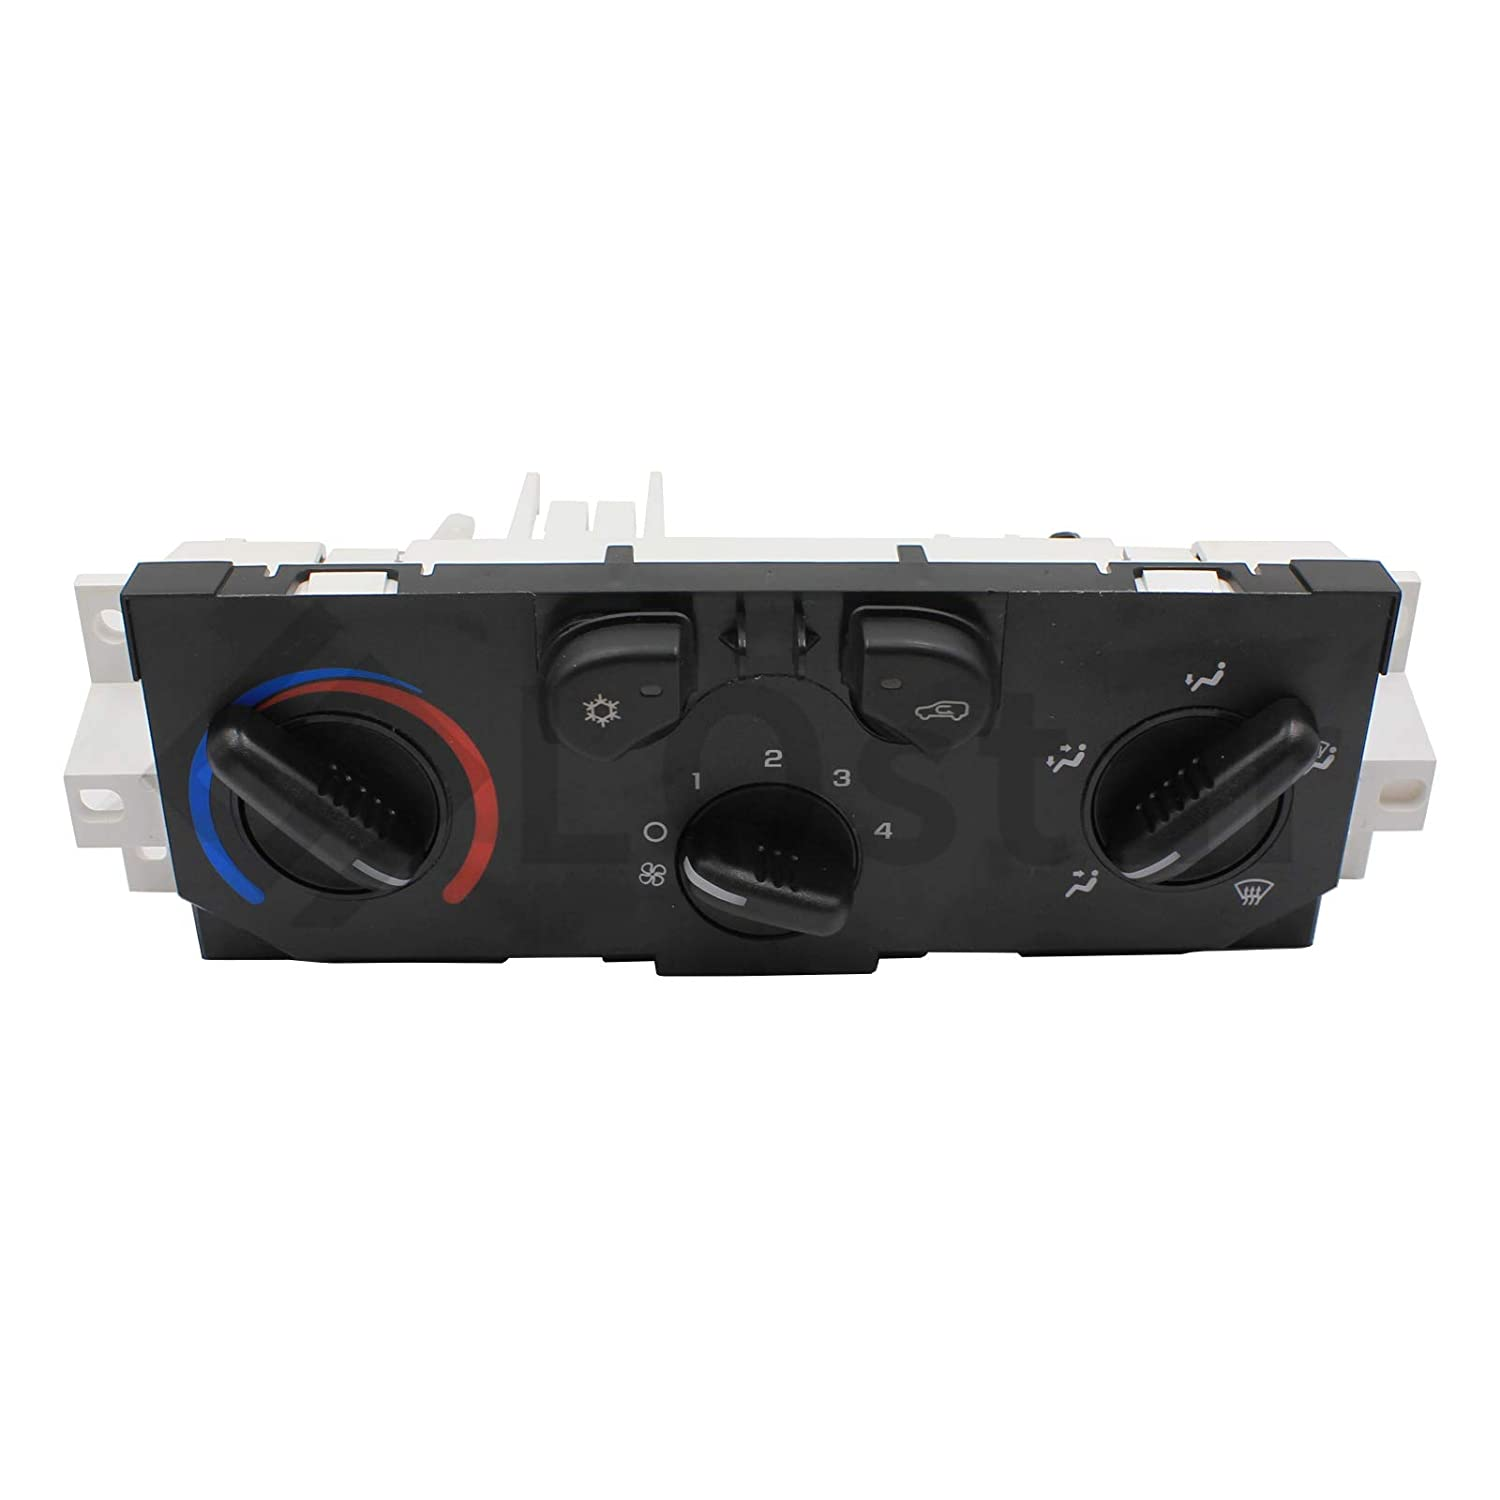 LOSTAR Manual A//C Air Conditioning Heater Control Panel Module Fits 2004 2005 2006 2007 2008 2009 2010 2011 2012 Chevy Colorado GMC Canyon 15-73870 25841856